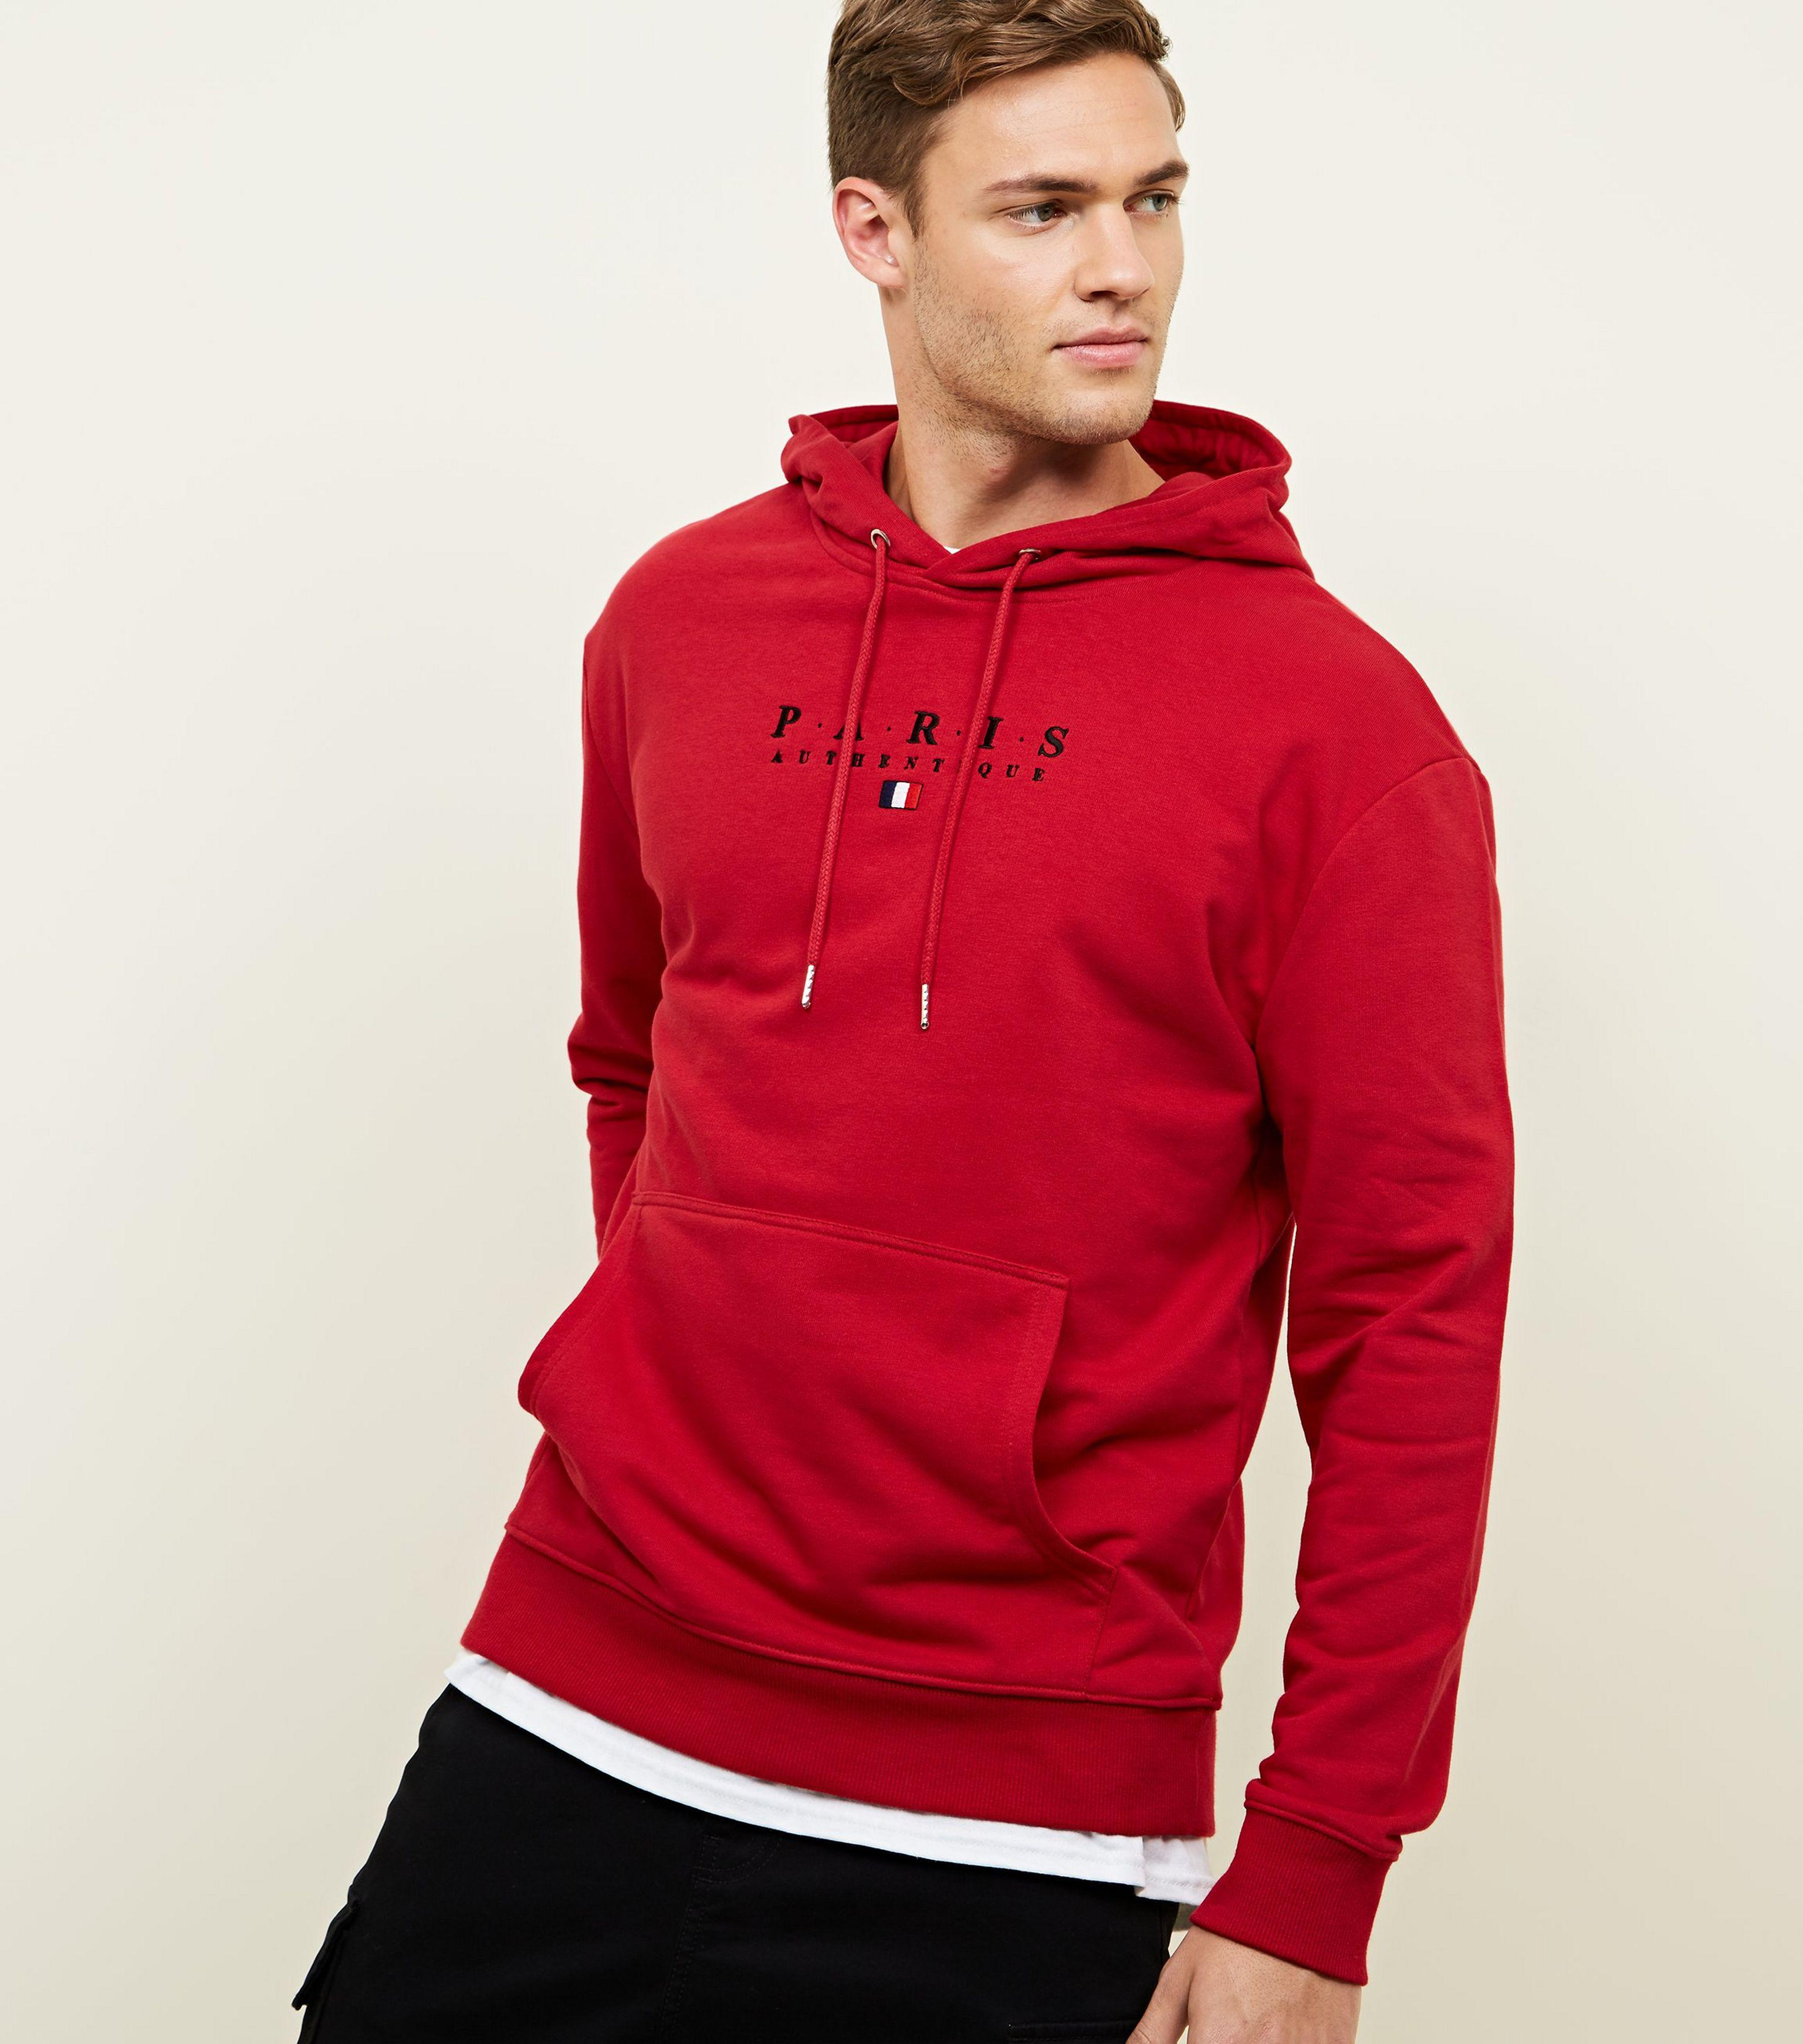 New Look Red Paris Embroidered Hoodie in Red for Men - Lyst 082115032c